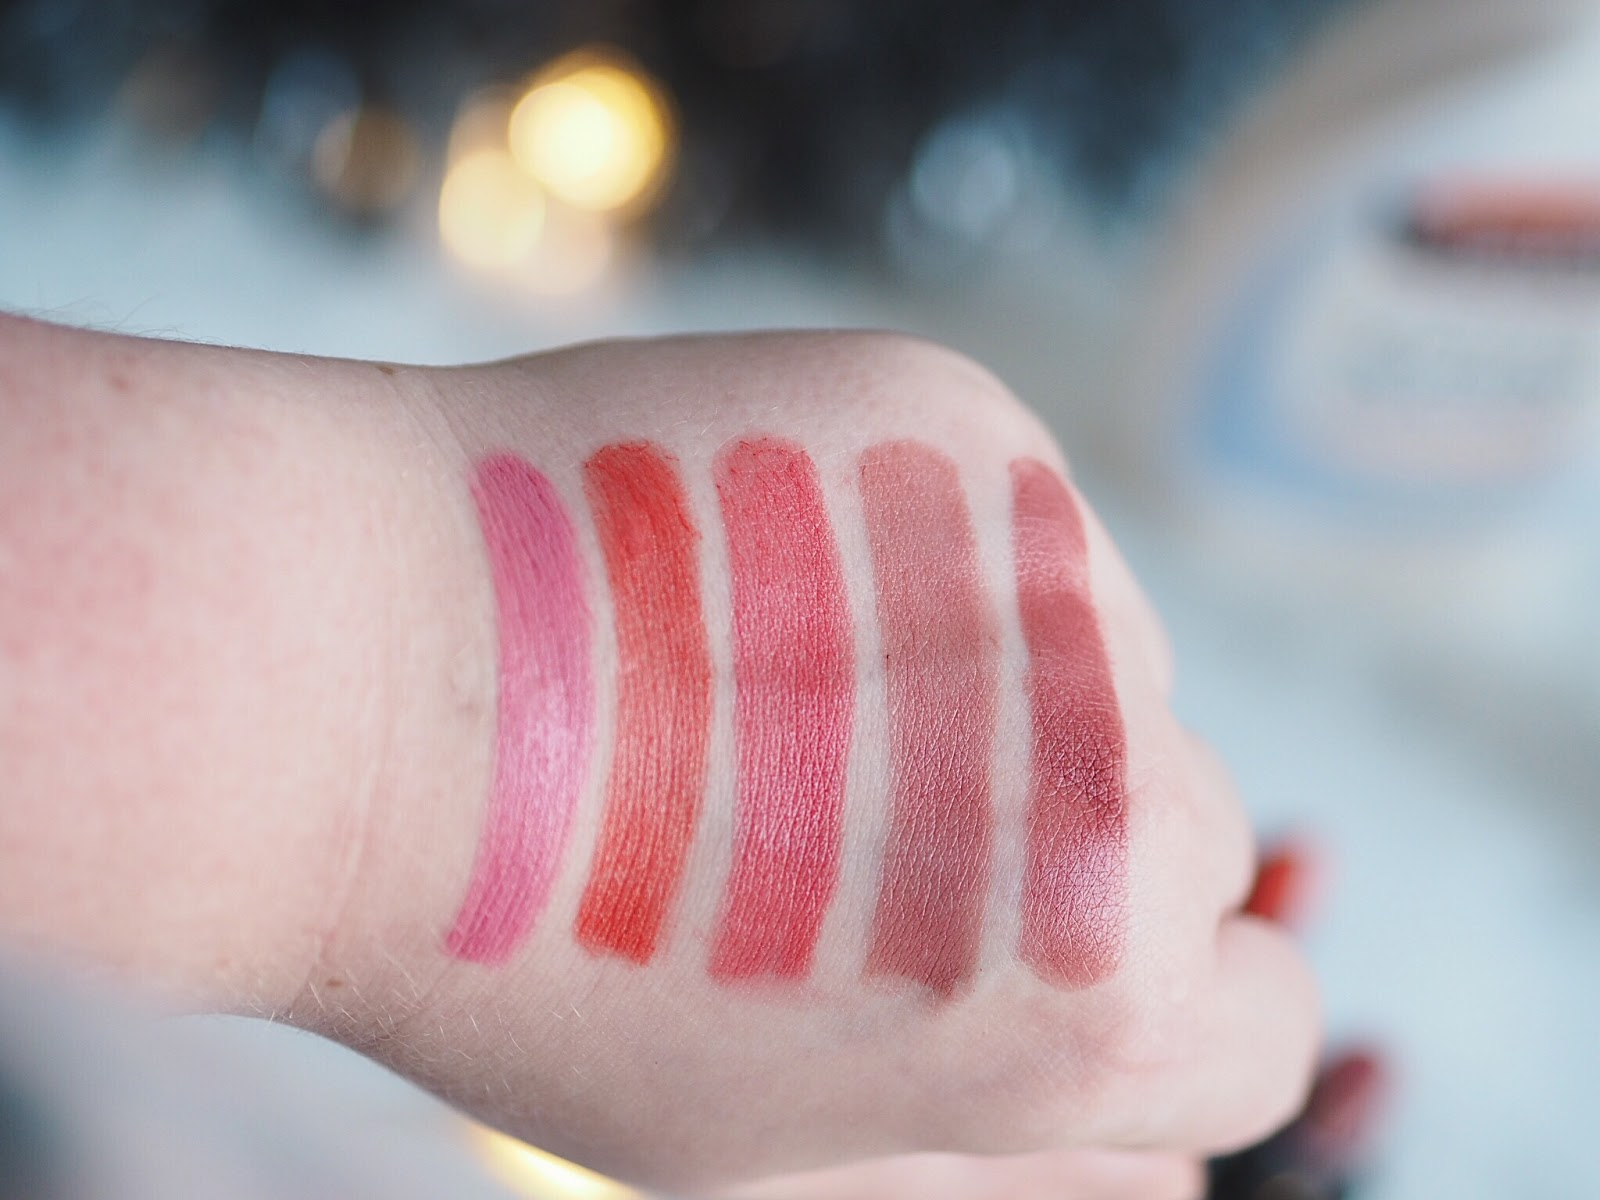 Calvin Klein luxury lipsticks swatch